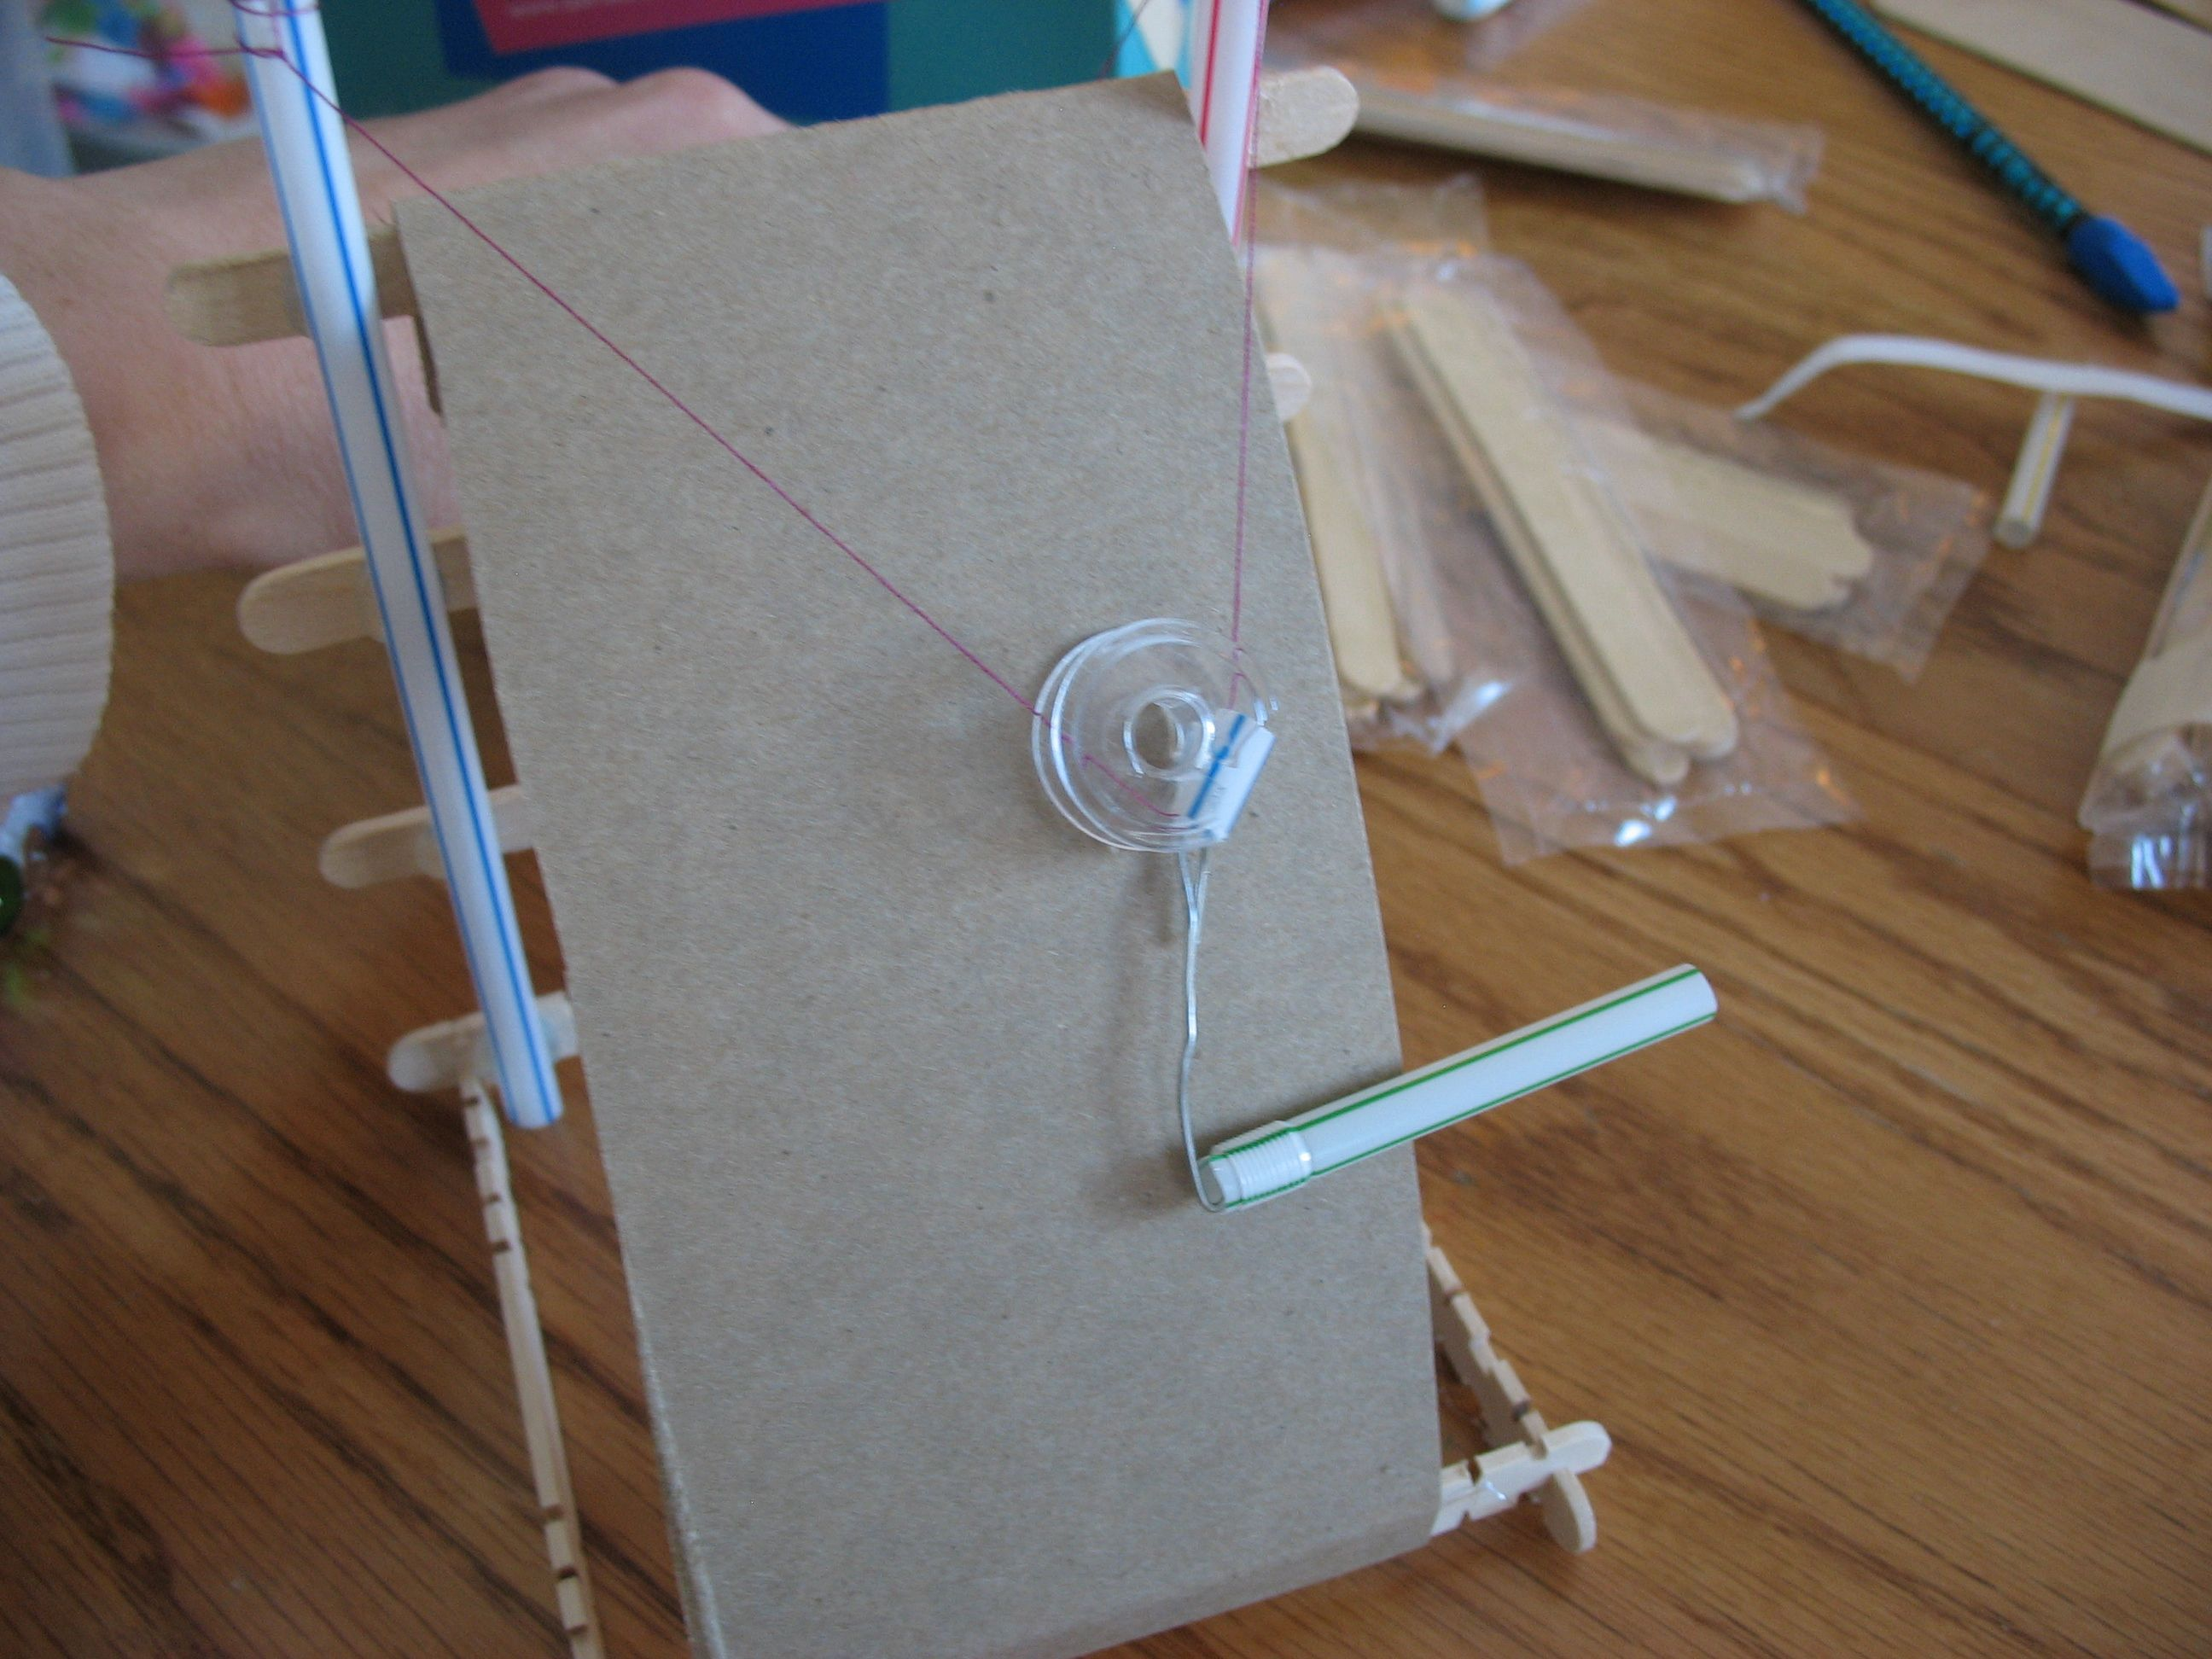 pulley using empty tape roll, straws and cardboard ...